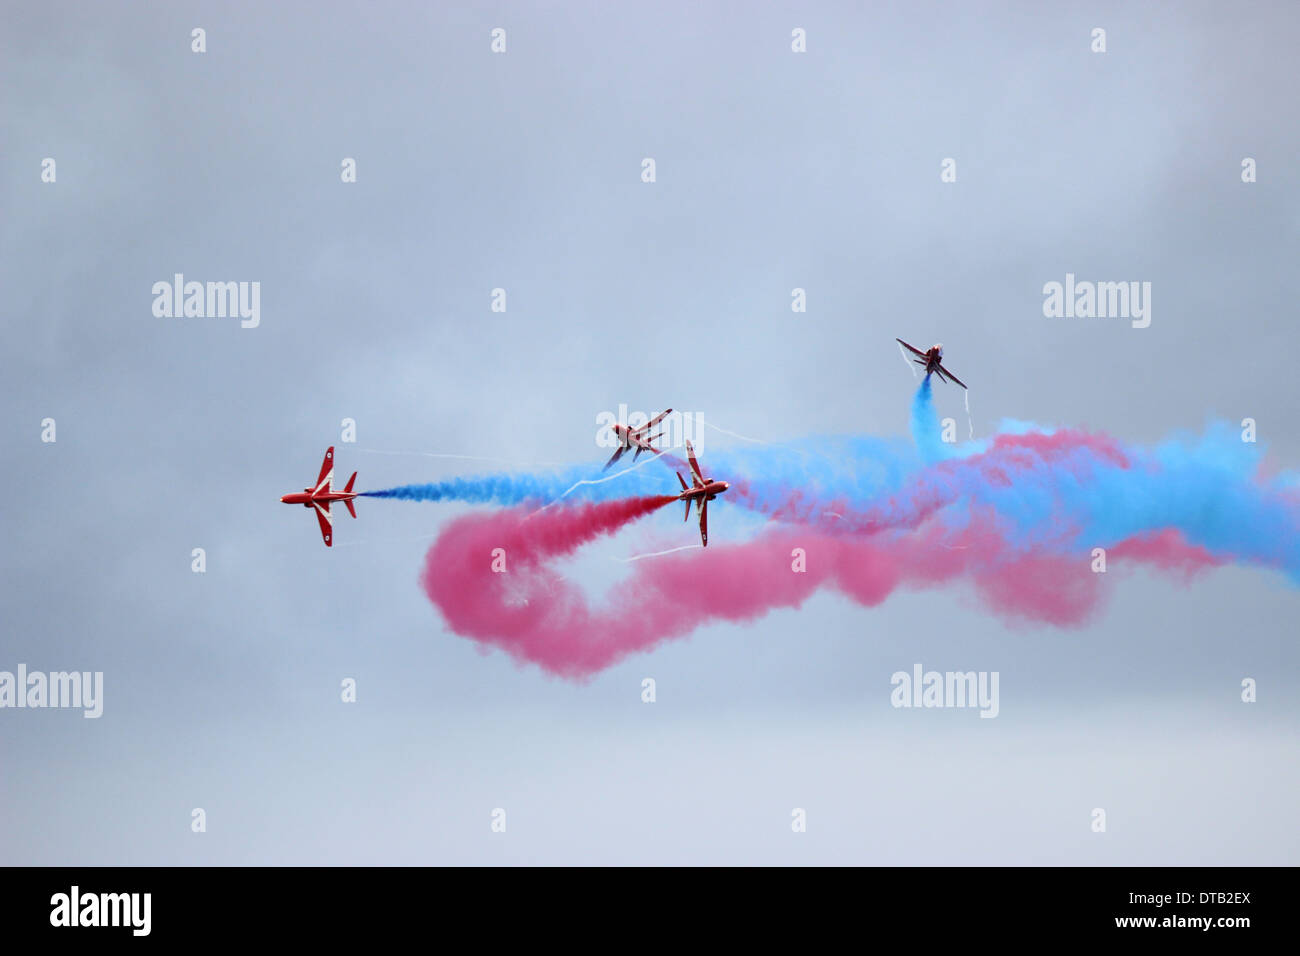 Red Arrows - Great North Run 2013 - Stock Image